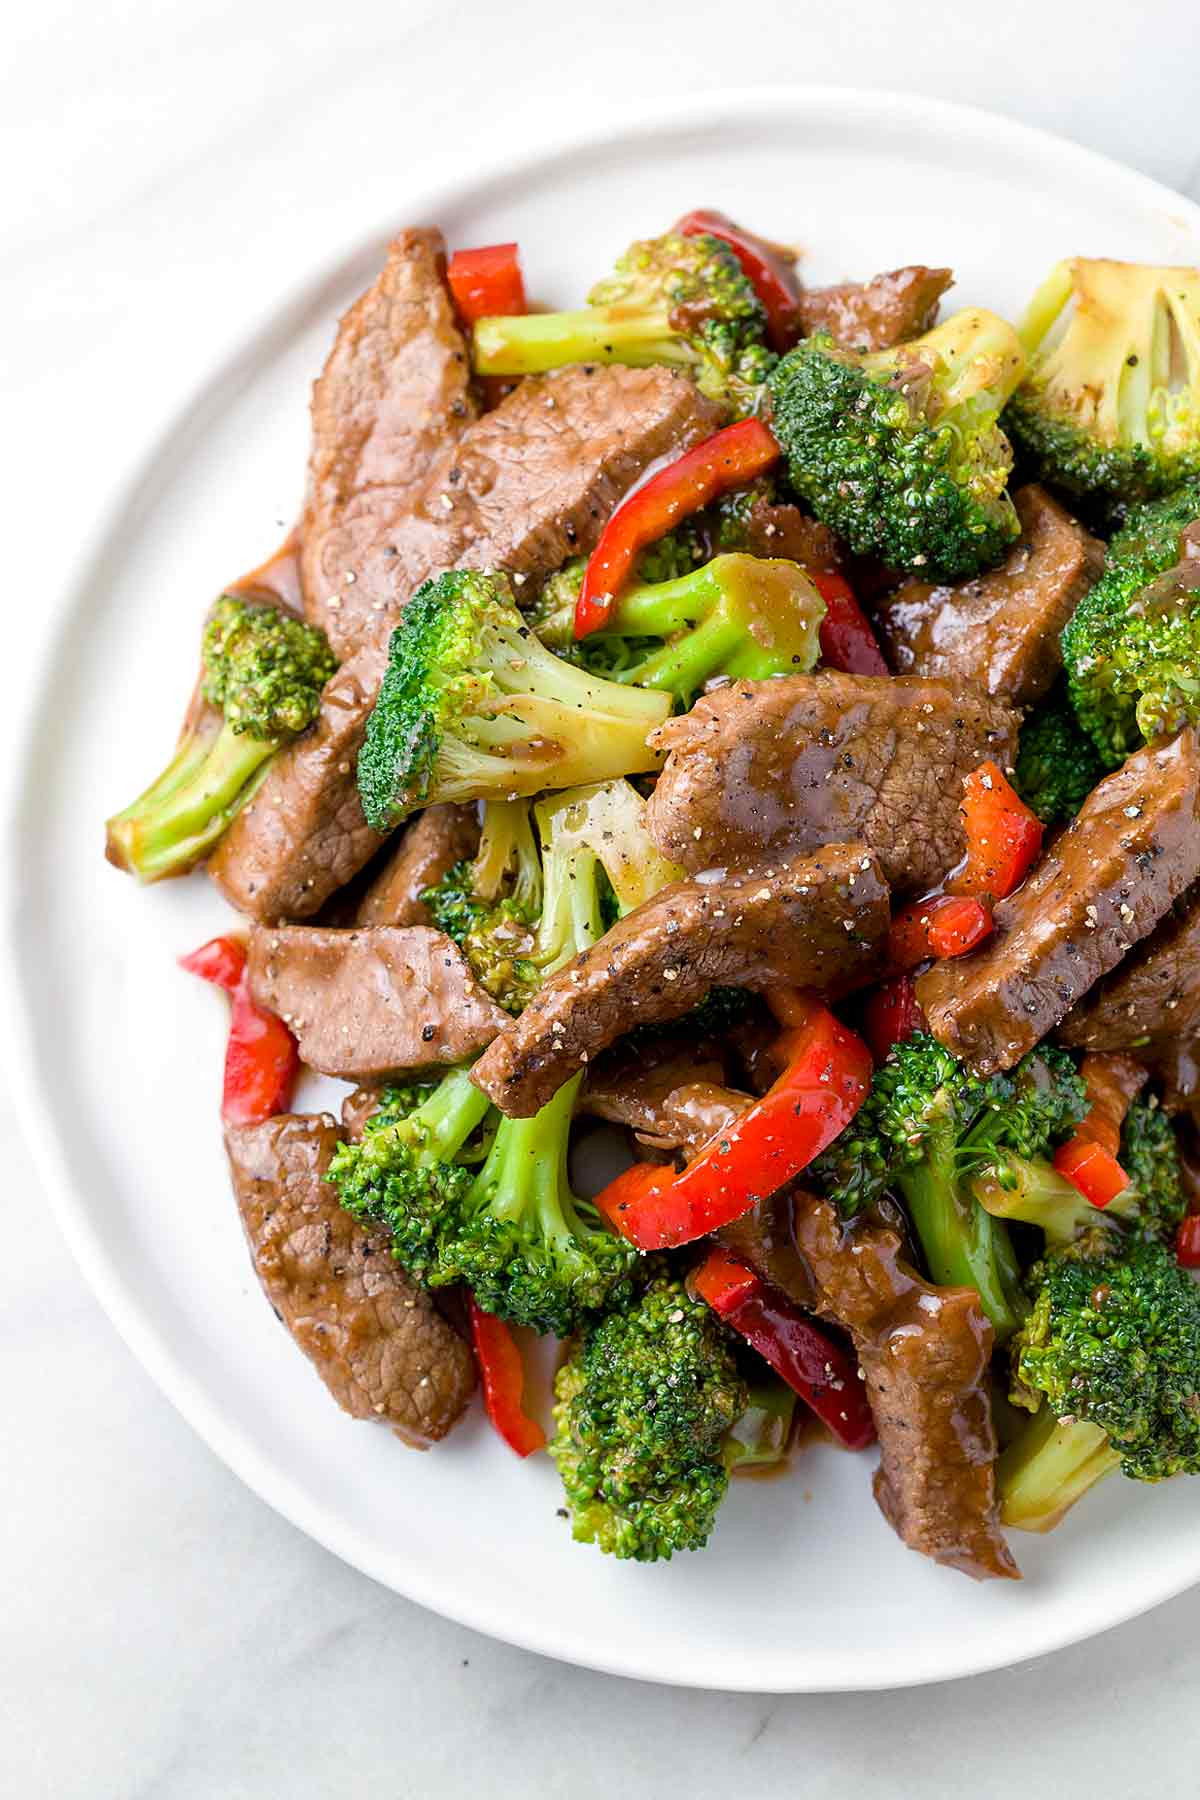 Chinese Beef Recipes  Chinese Beef with Broccoli Stir Fry Recipe Jessica Gavin